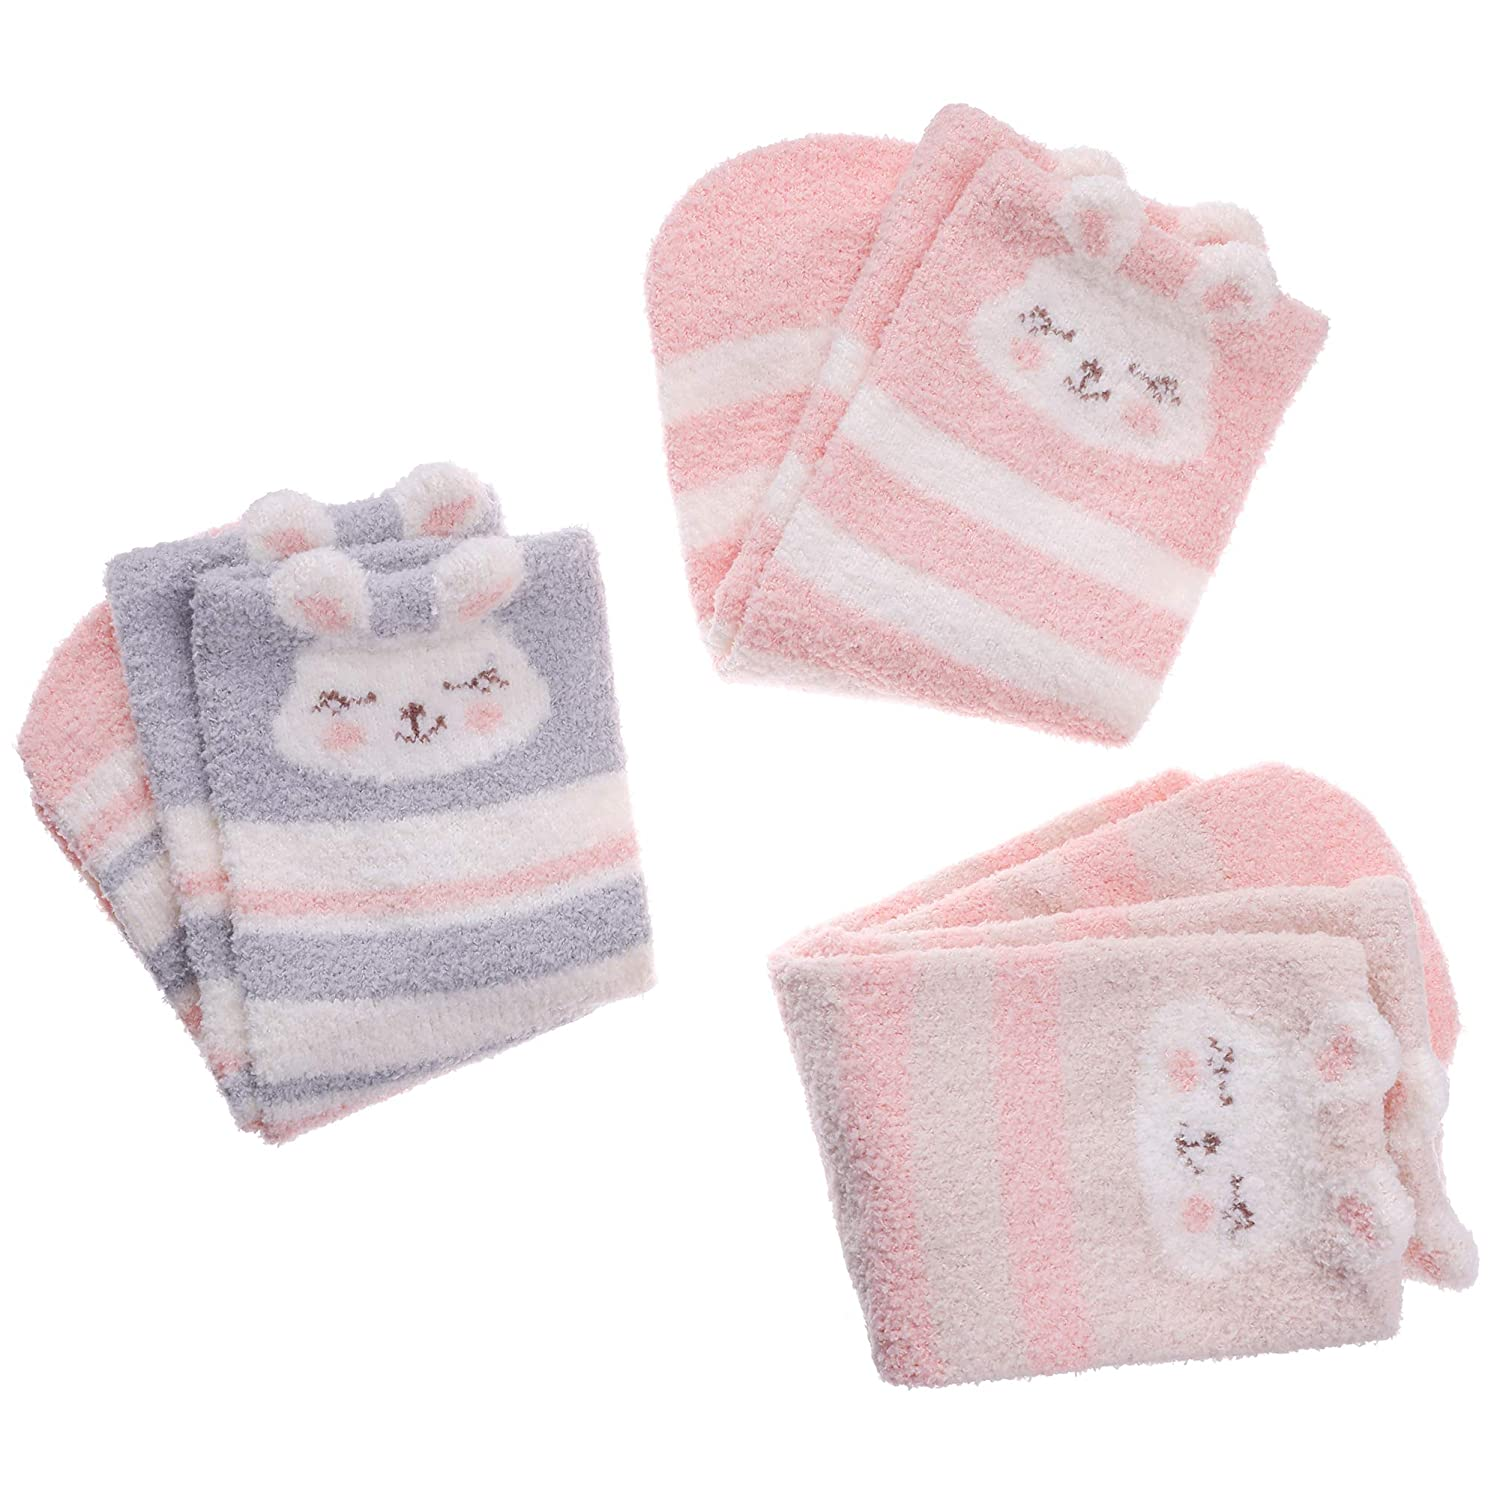 LANLEO Toddlers Kids Cute Cartoon Animal Fuzzy Socks Girls Boys Super Soft Warm Microfiber Winter Socks 3 Pairs